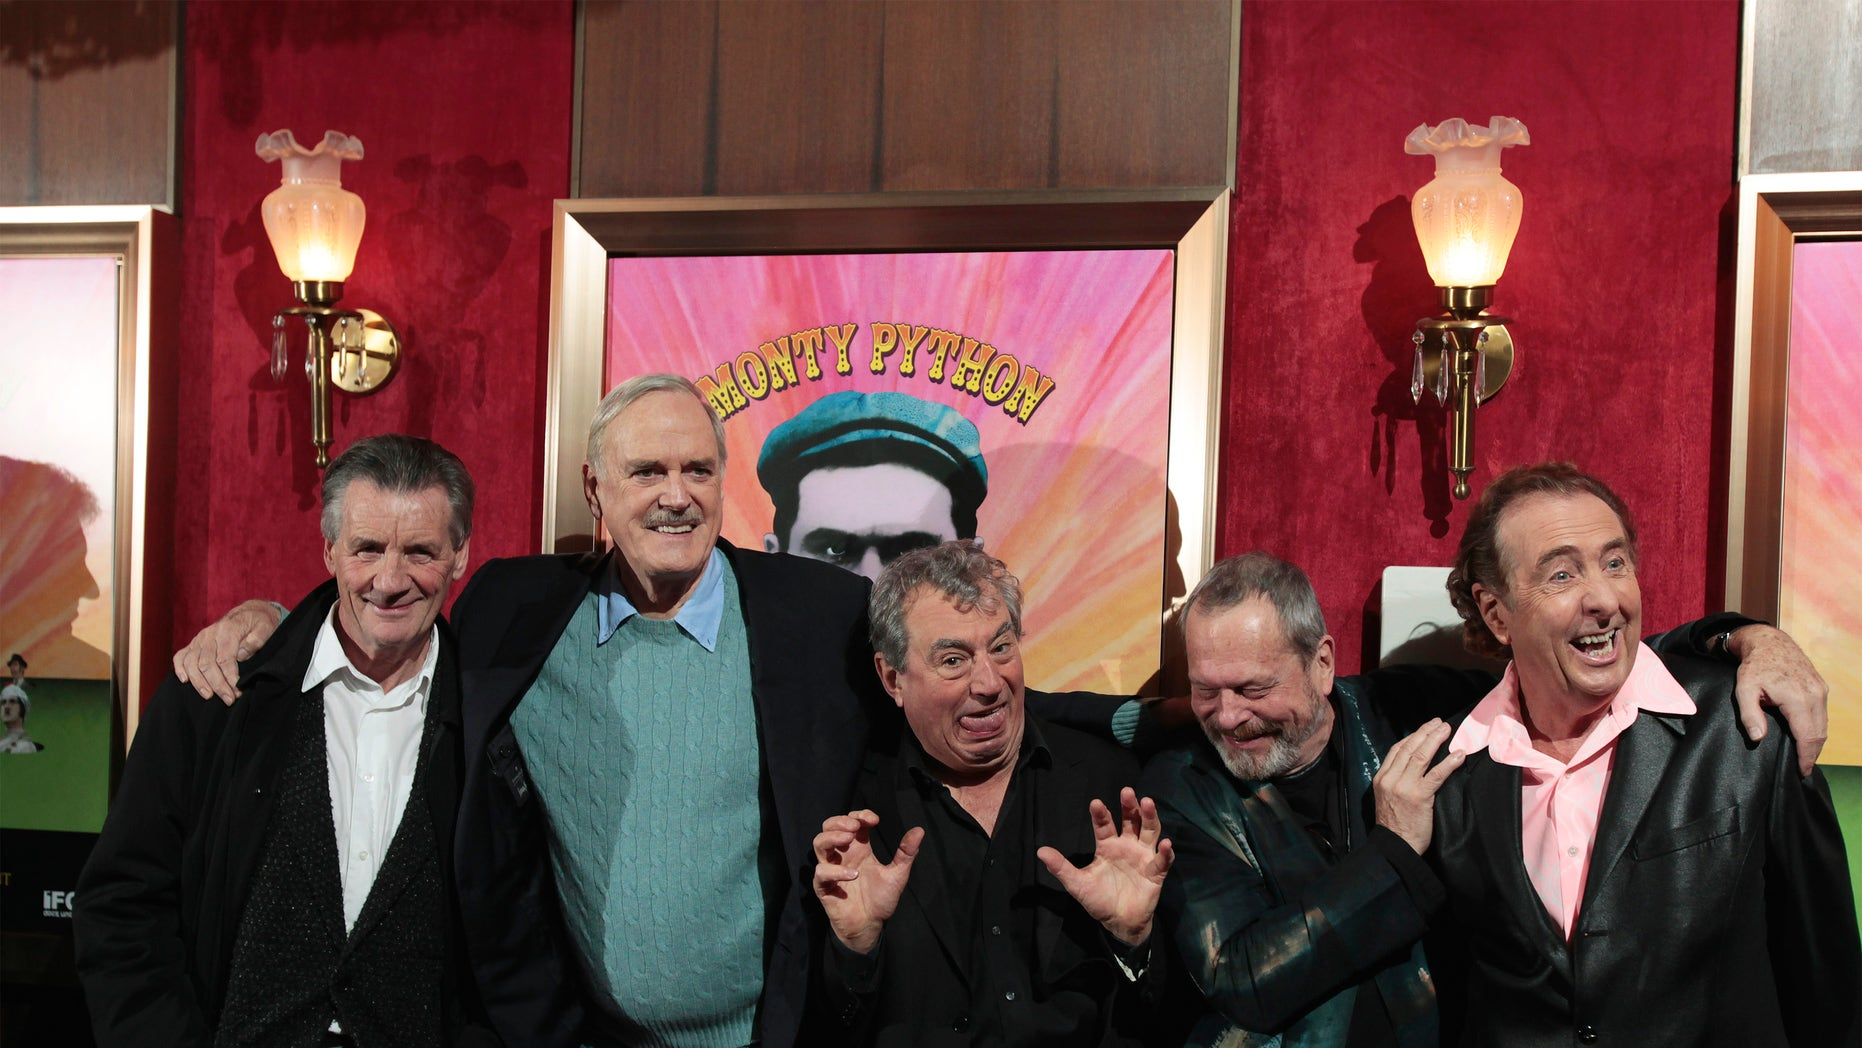 """(Left to right) The original cast of the Monty Python troupe Michael Palin, John Cleese, Terry Jones, Terry Gilliam and Eric Idle smile as they arrive at the premiere of the documentary """"Monty Python: Almost The Truth (Lawyer's Cut)"""" celebrating the troupe's 40th anniversary, in New York October 15, 2009."""